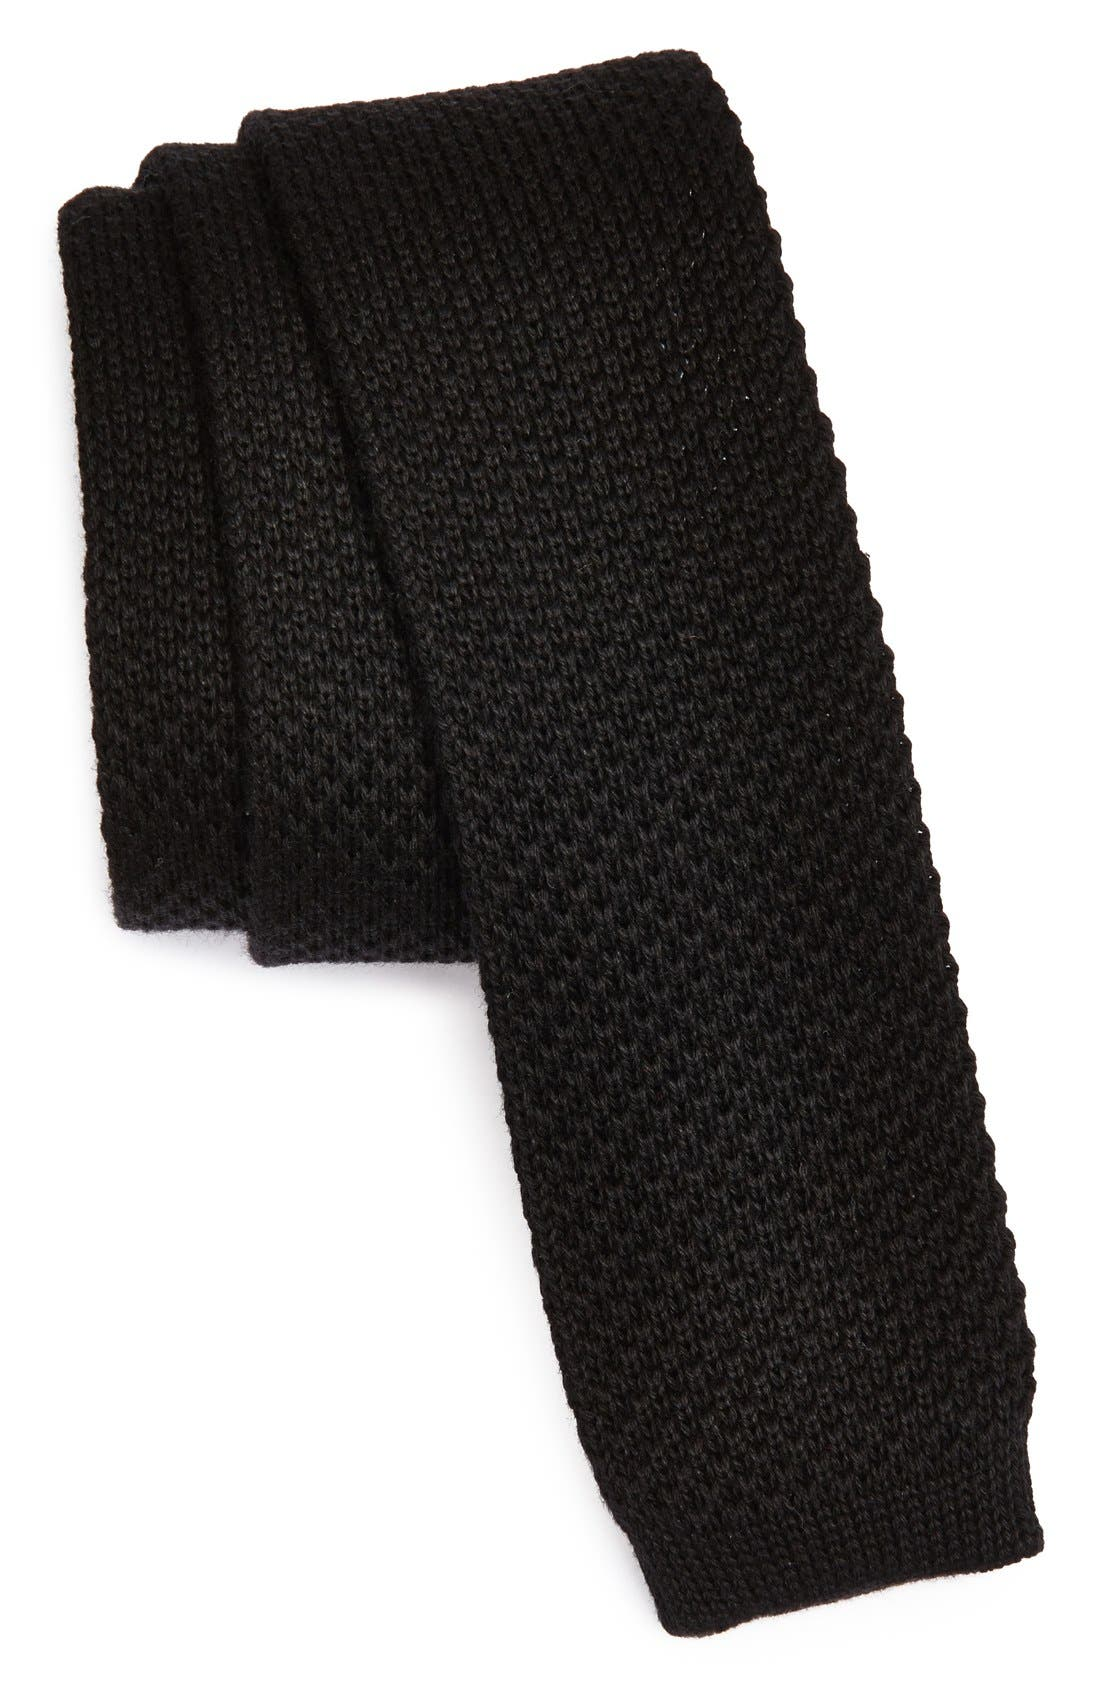 Alternate Image 1 Selected - BOSS HUGO BOSS Knit Cotton Tie